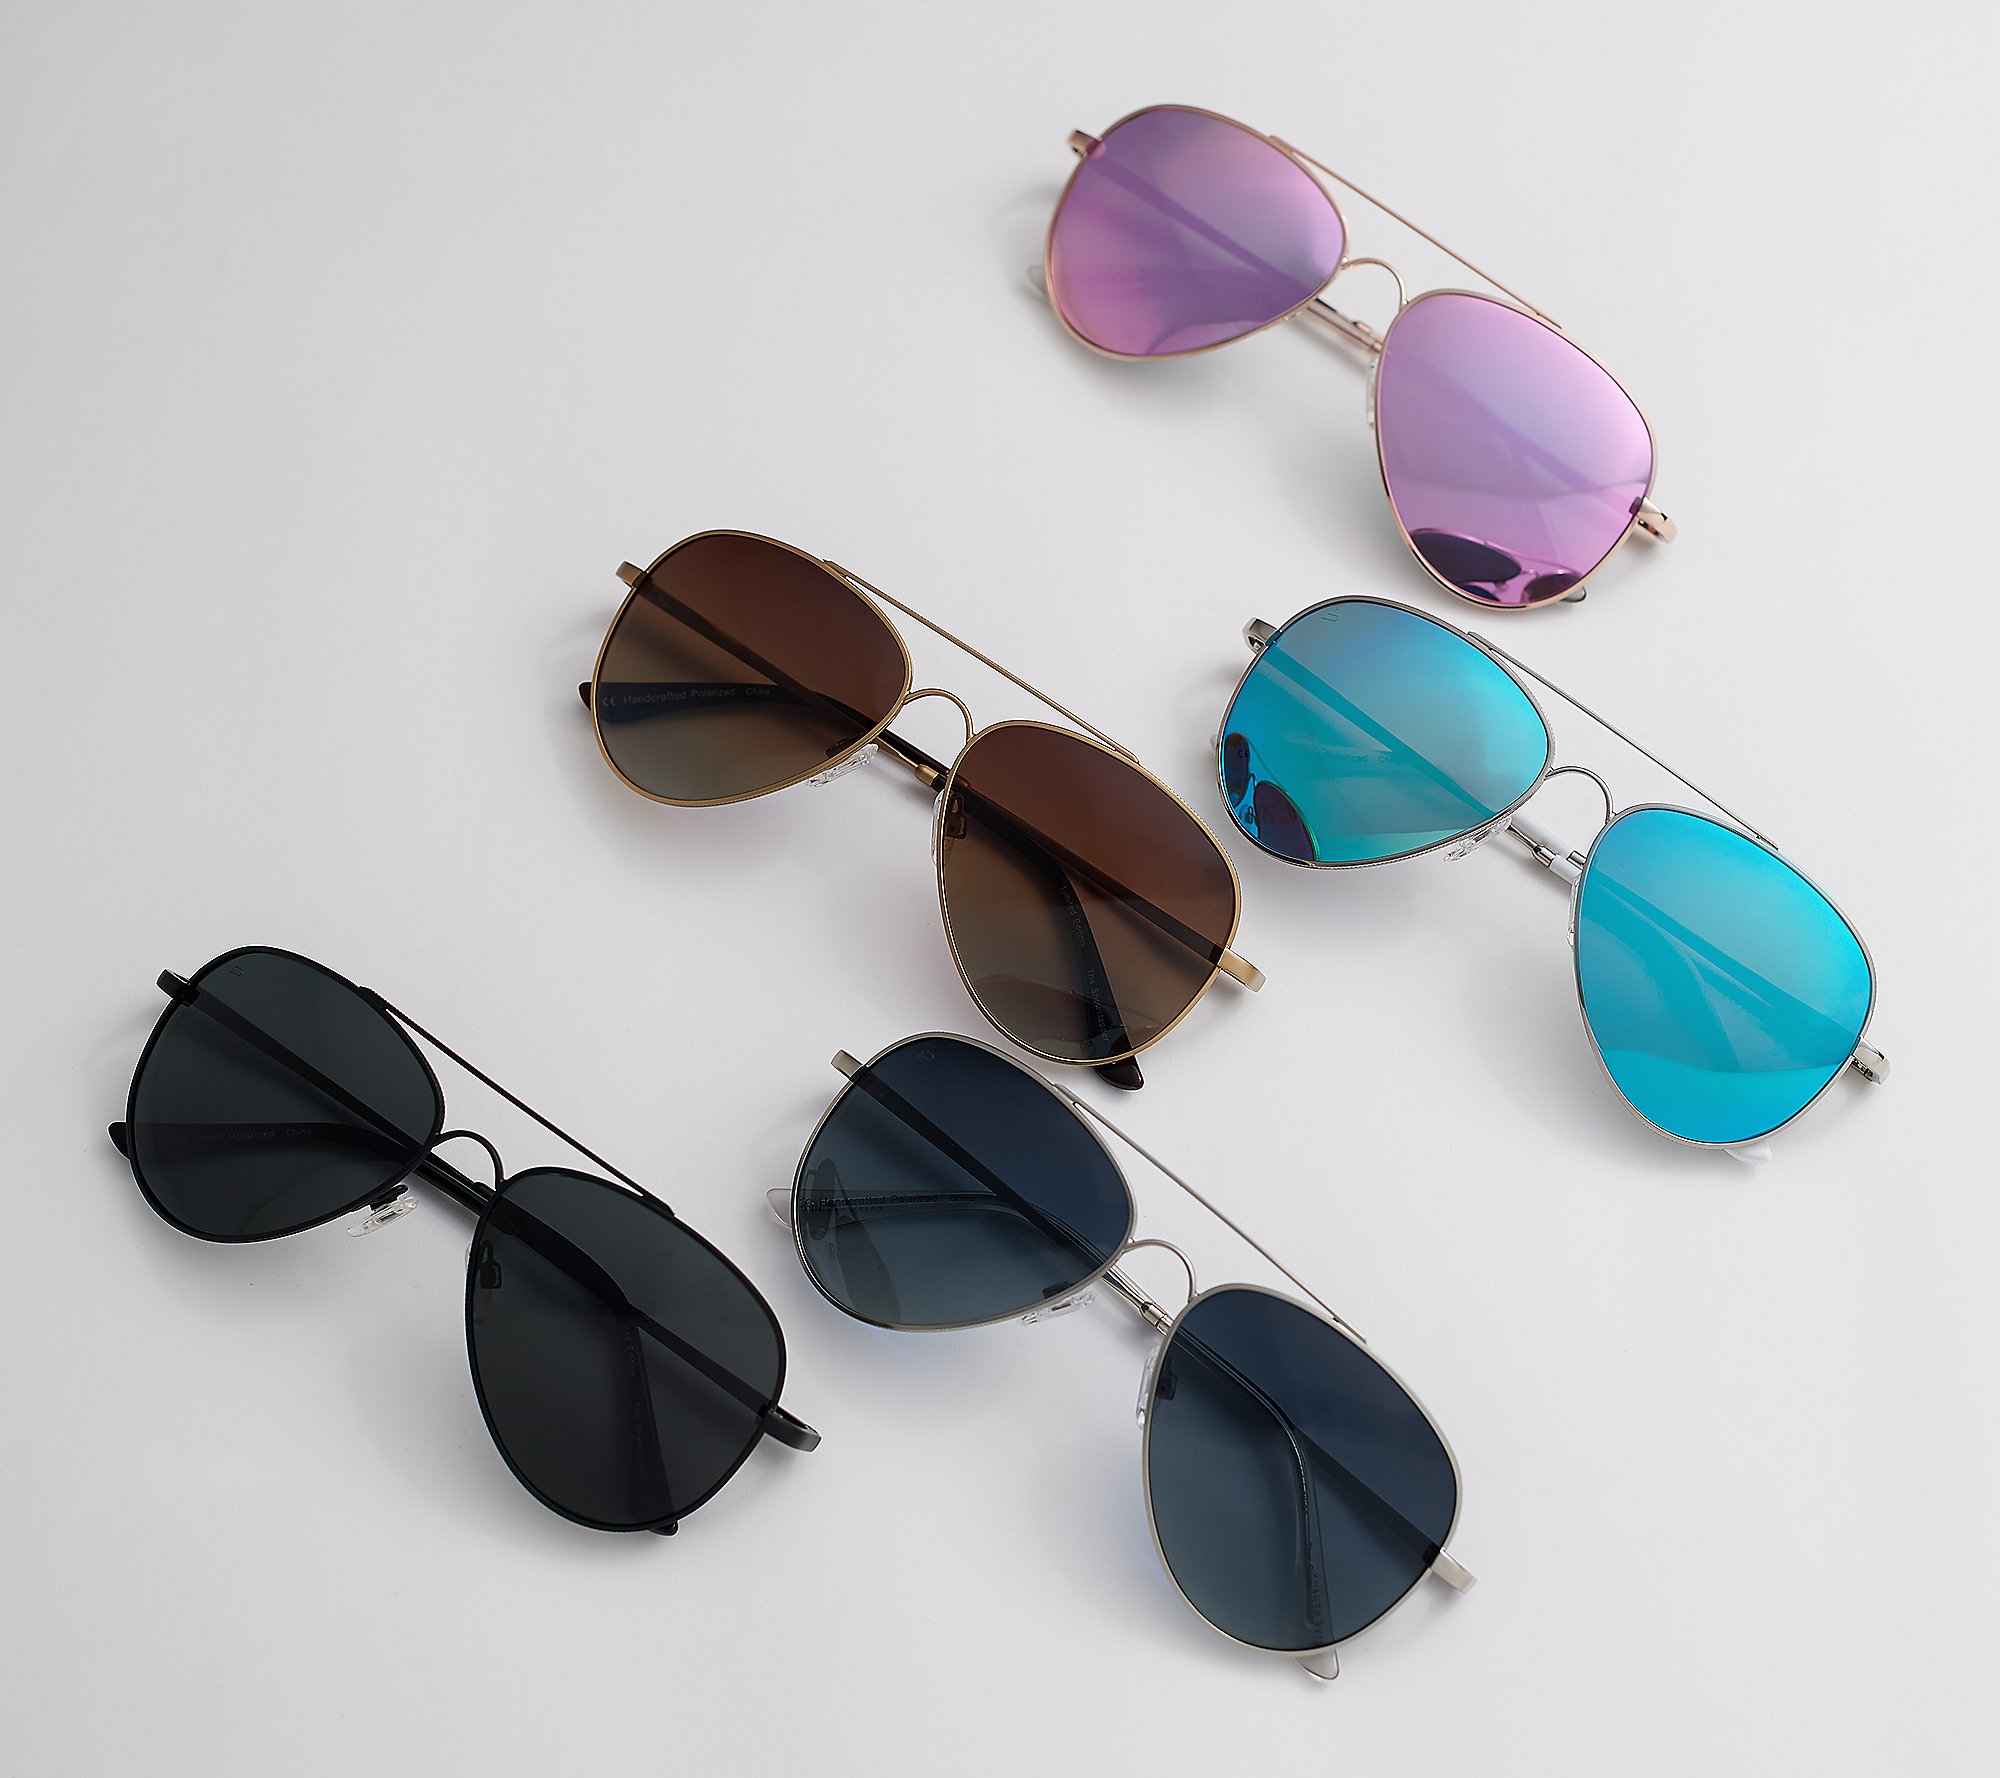 Prive Revaux The Showstopper Polarized Sunglasses Special Edition